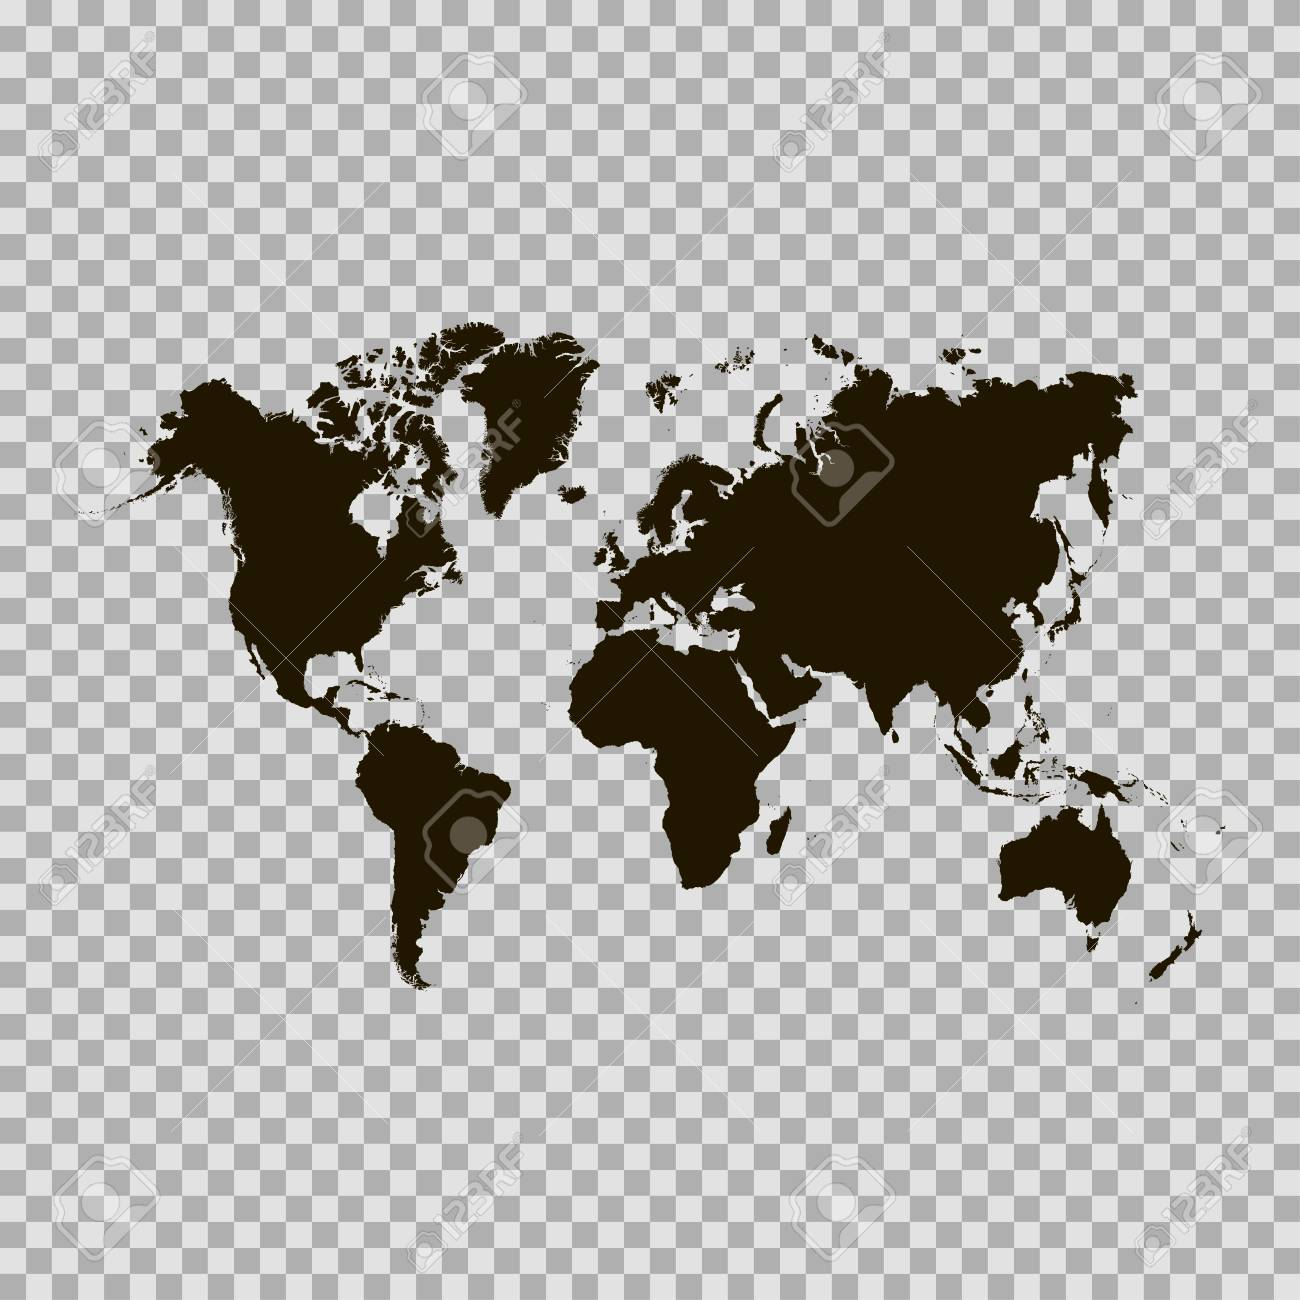 Flat World Map Vector.Black Similar World Map World Map Blank World Map Vector World